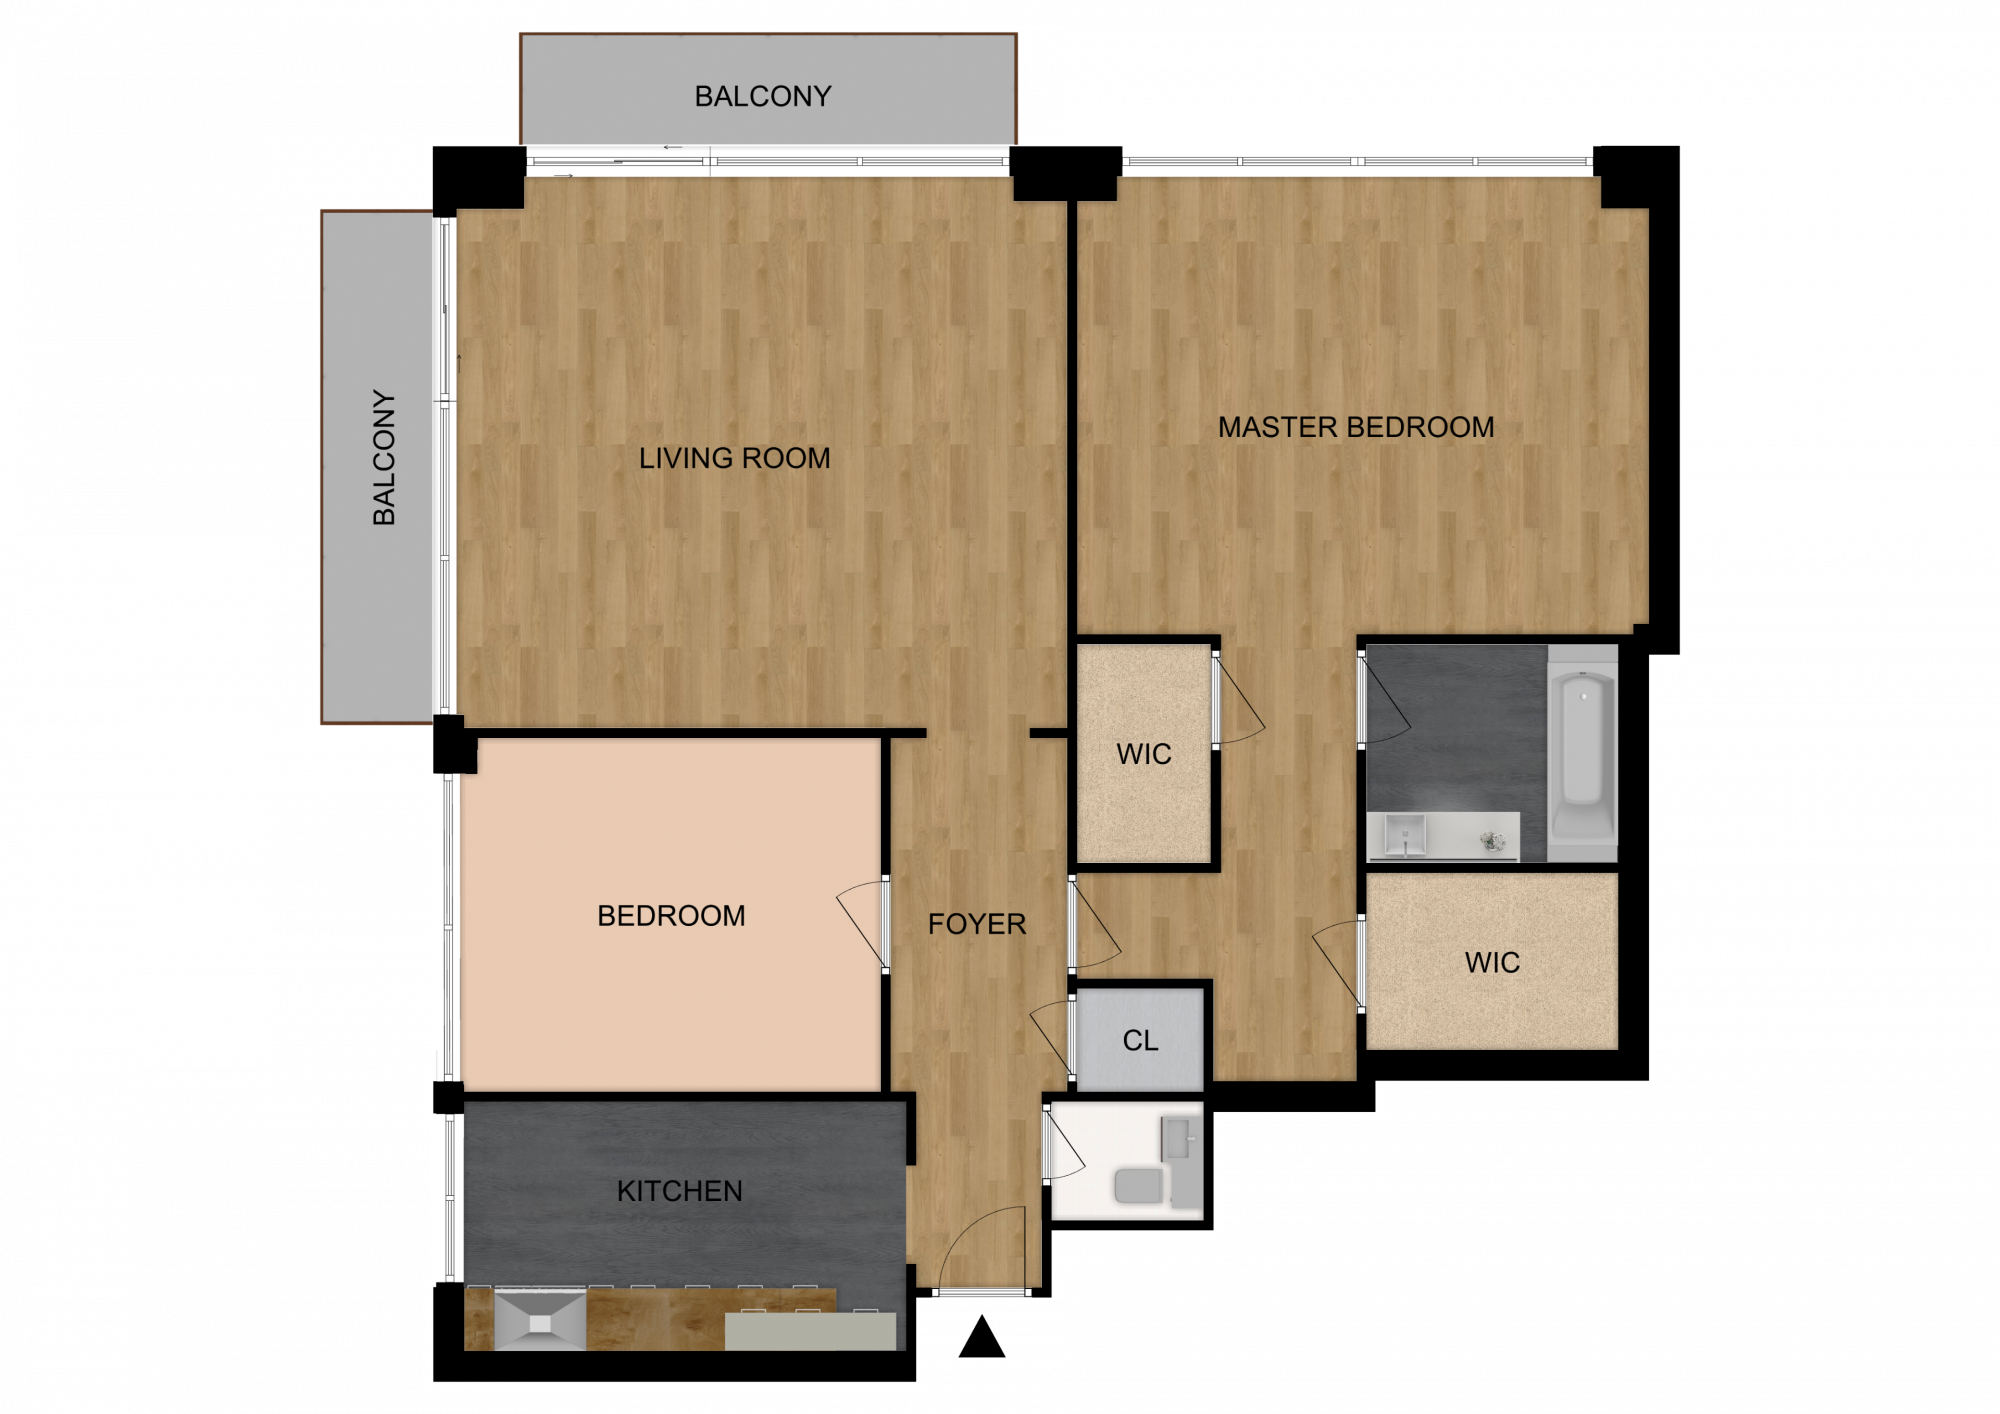 Floorplanner-NYC-apartment-2d-floorplan-with-finish